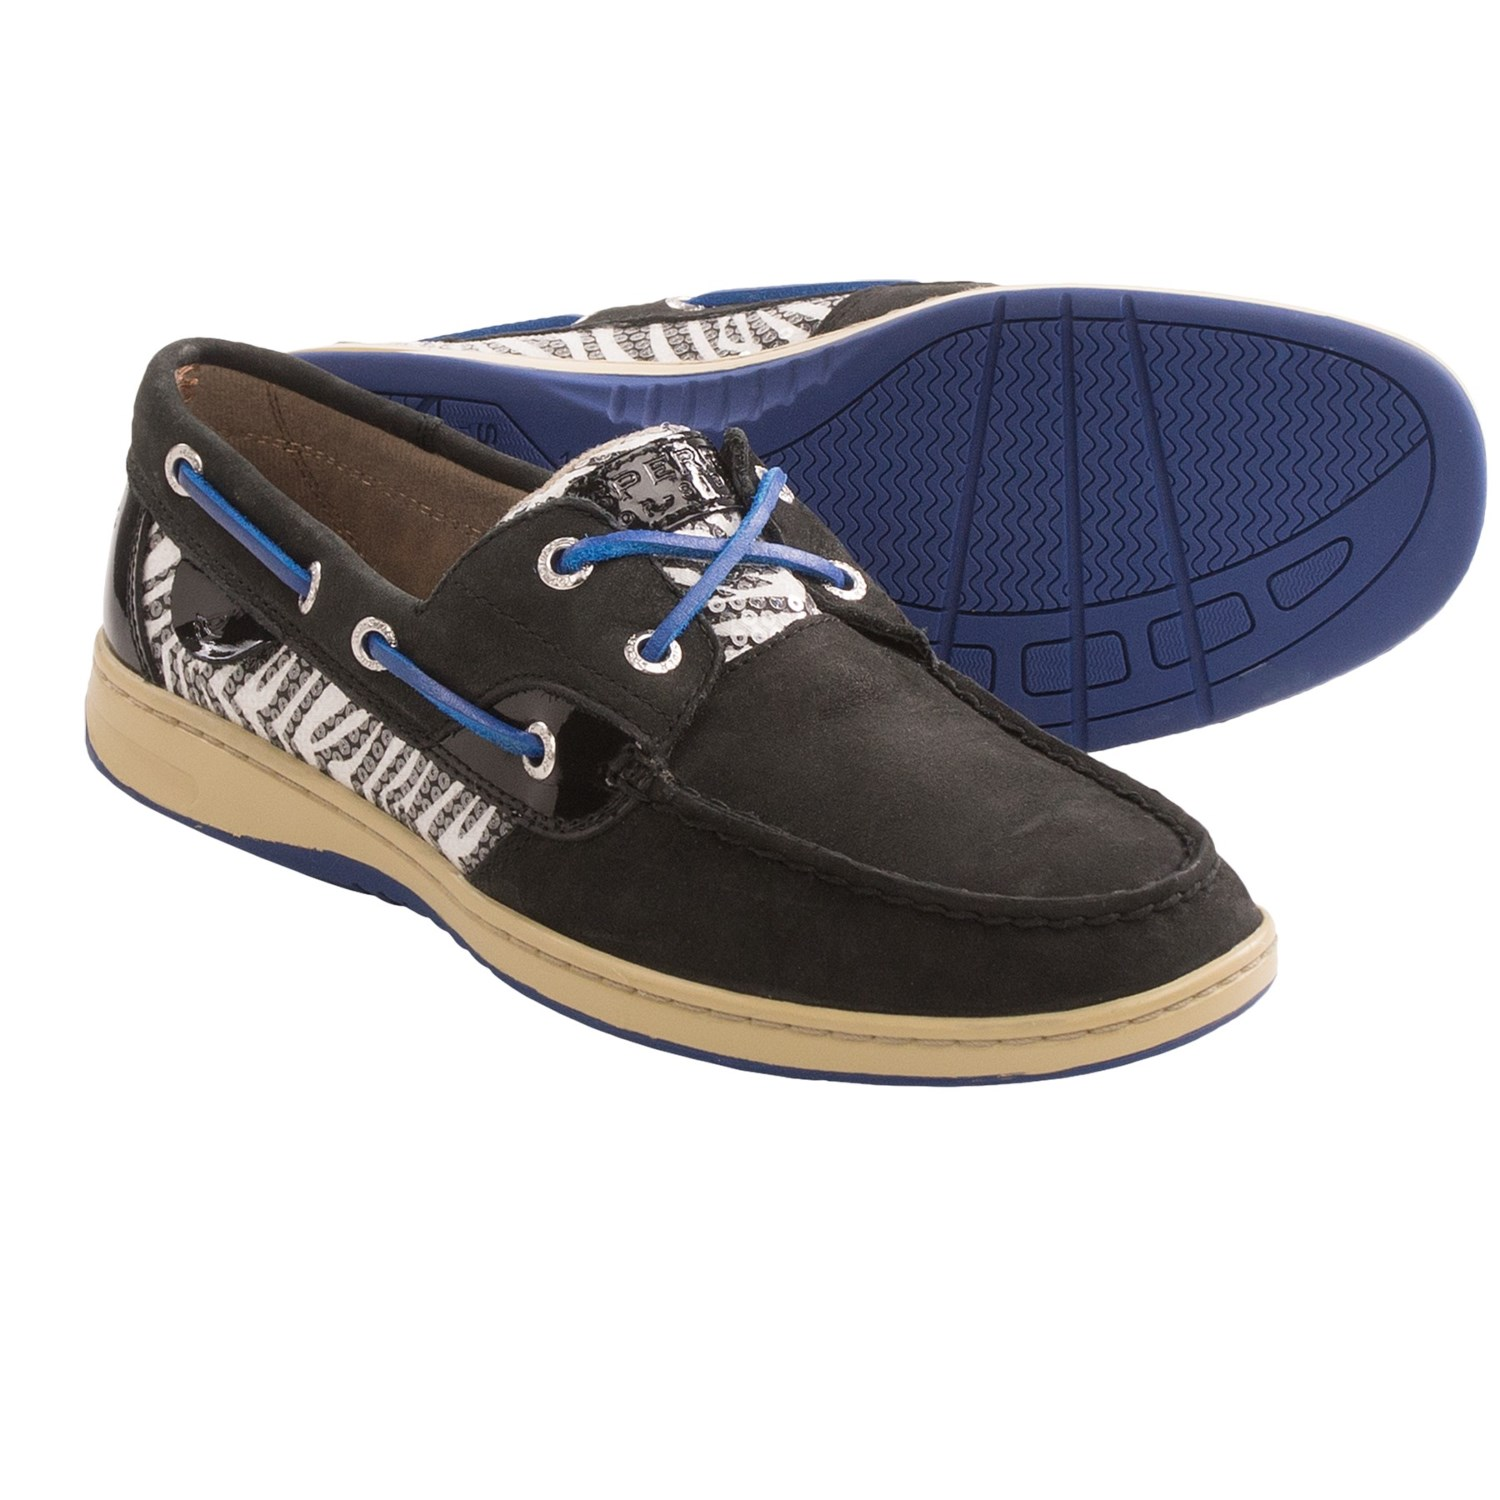 Sperry Top Sider Womens Bluefish